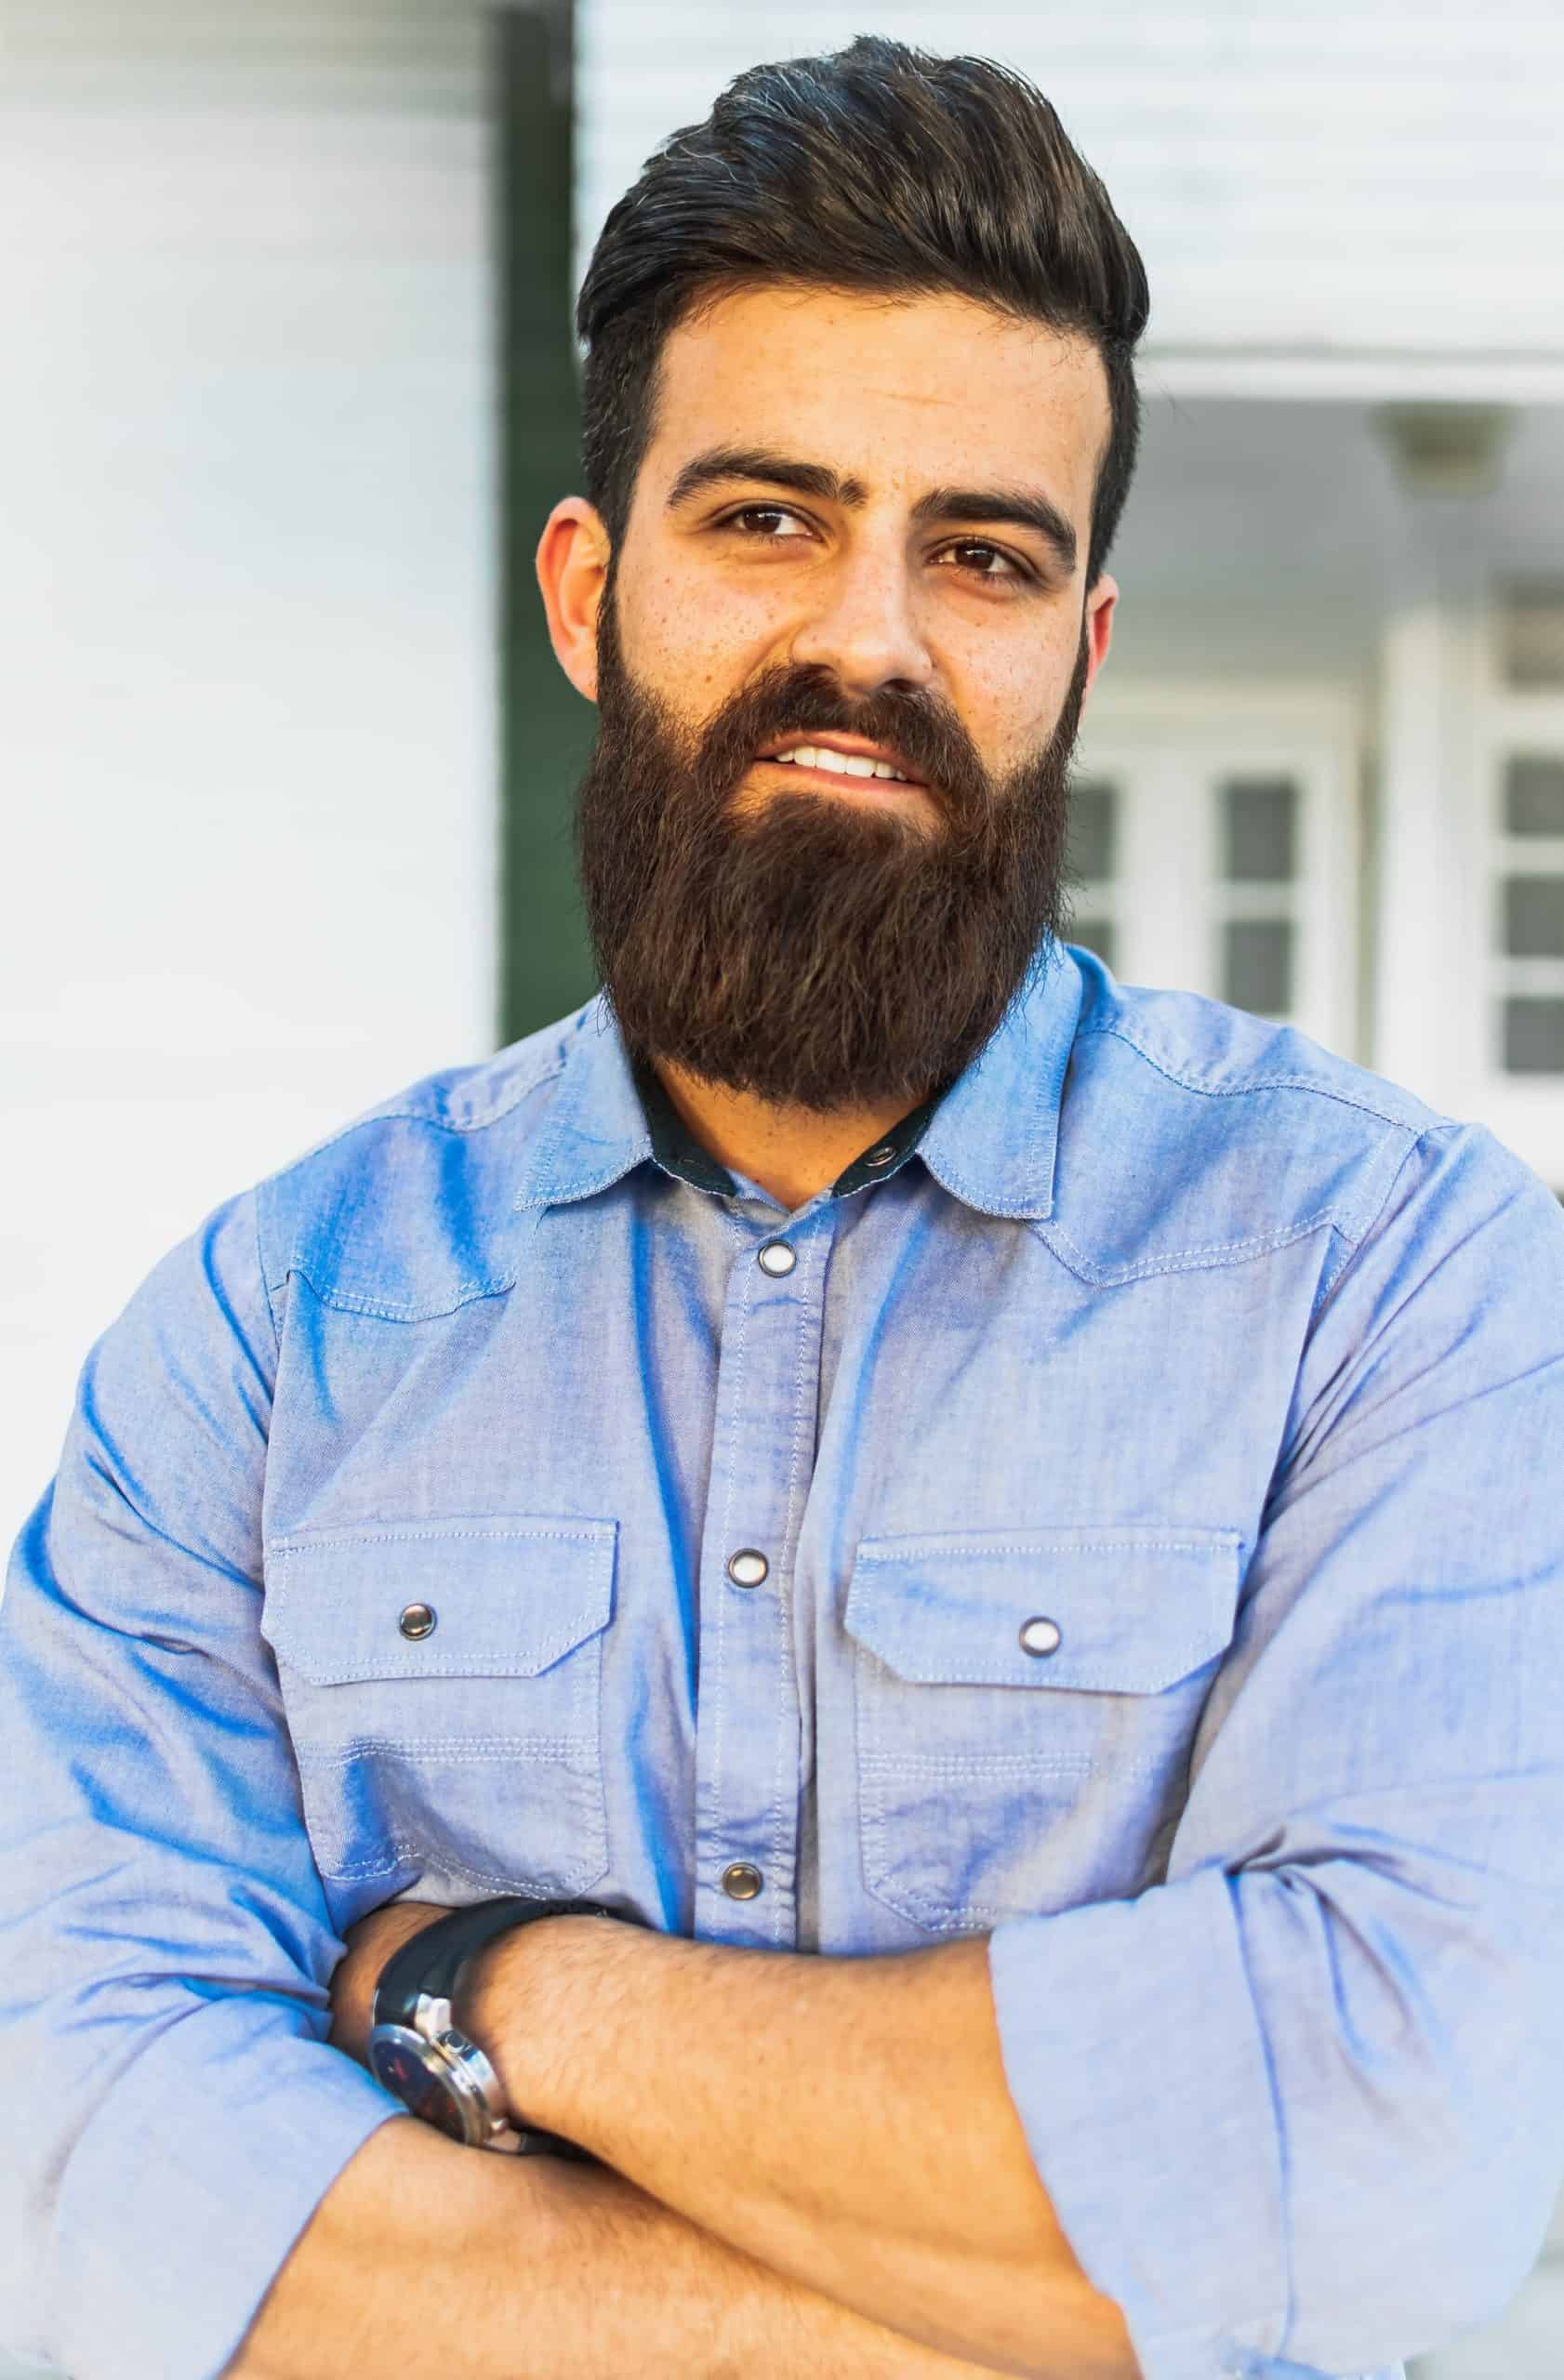 How to Find the Best Beard Trend Style